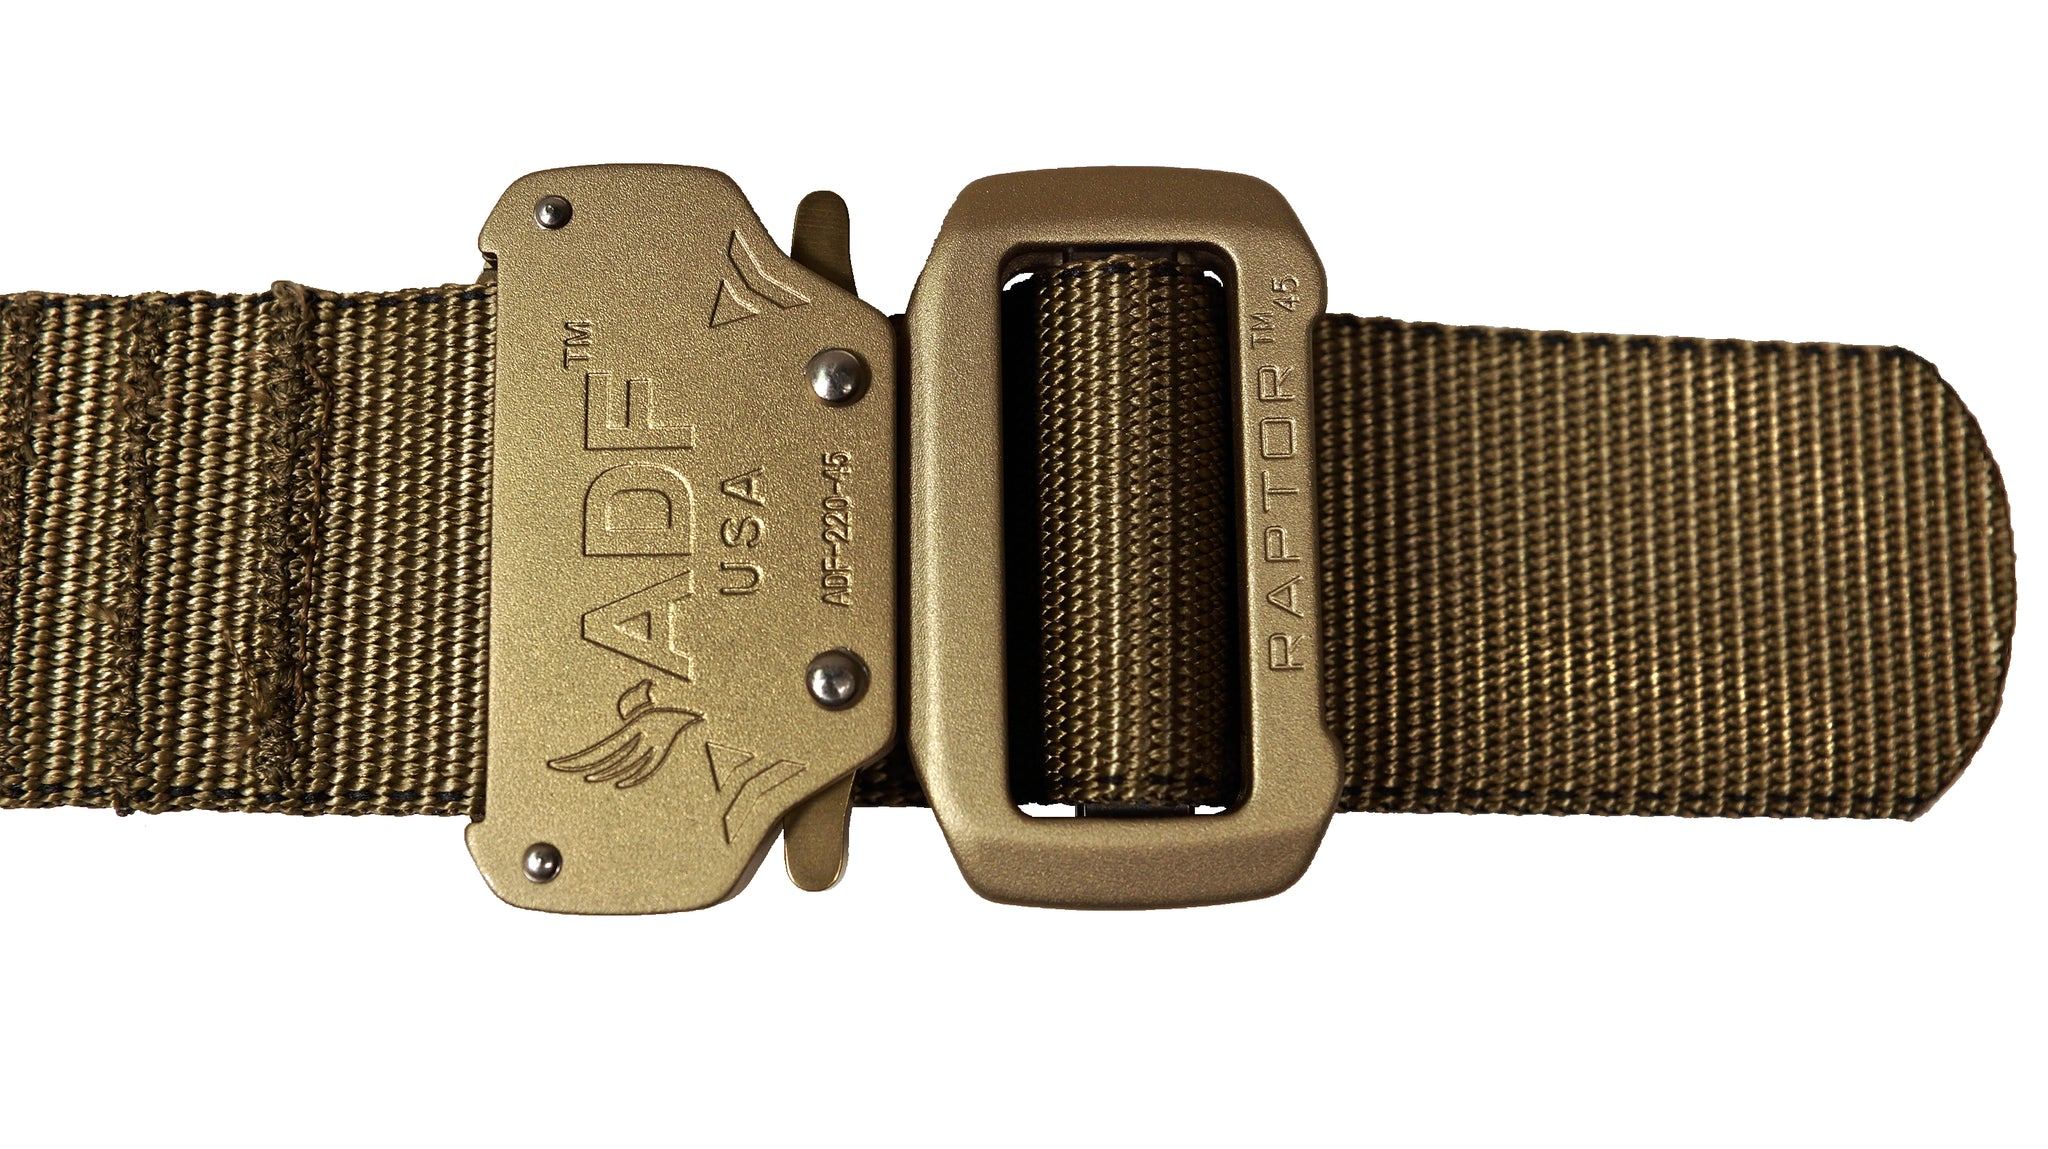 Coyote JBC WEB Belt: Zoomed-in view of Raptor buckle with quick release latches